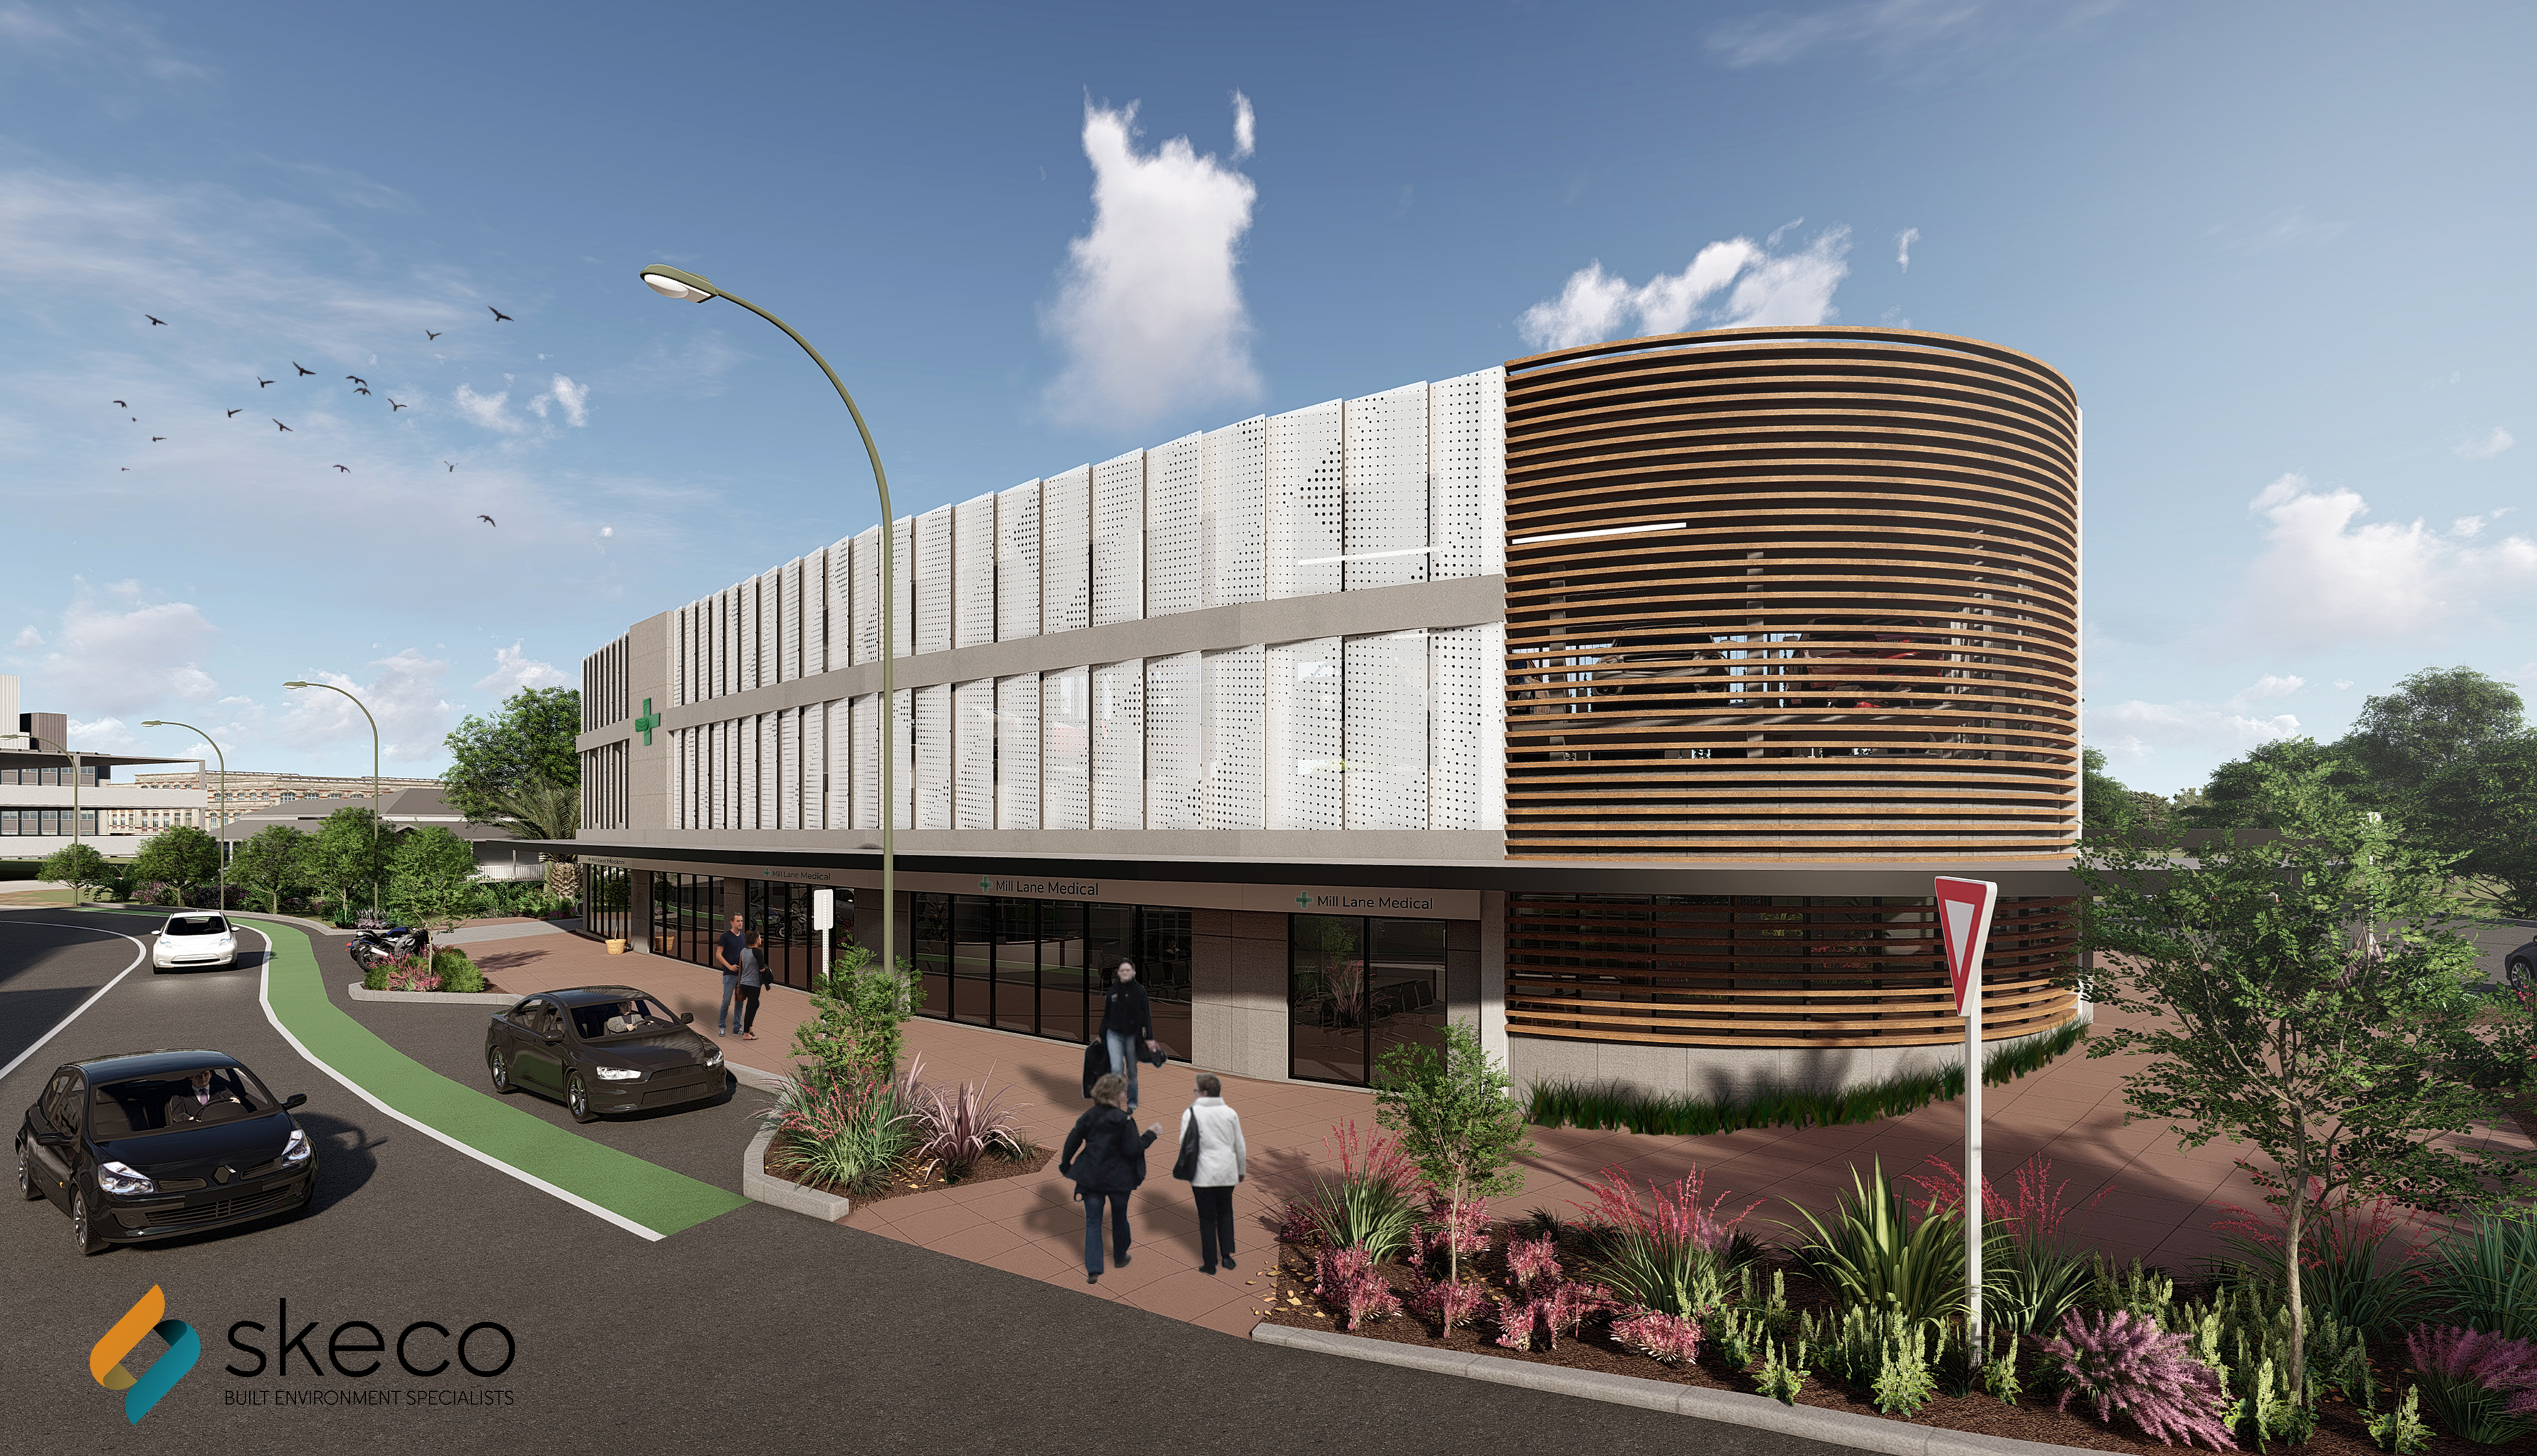 MILL LANE MEDICAL RENDER 3